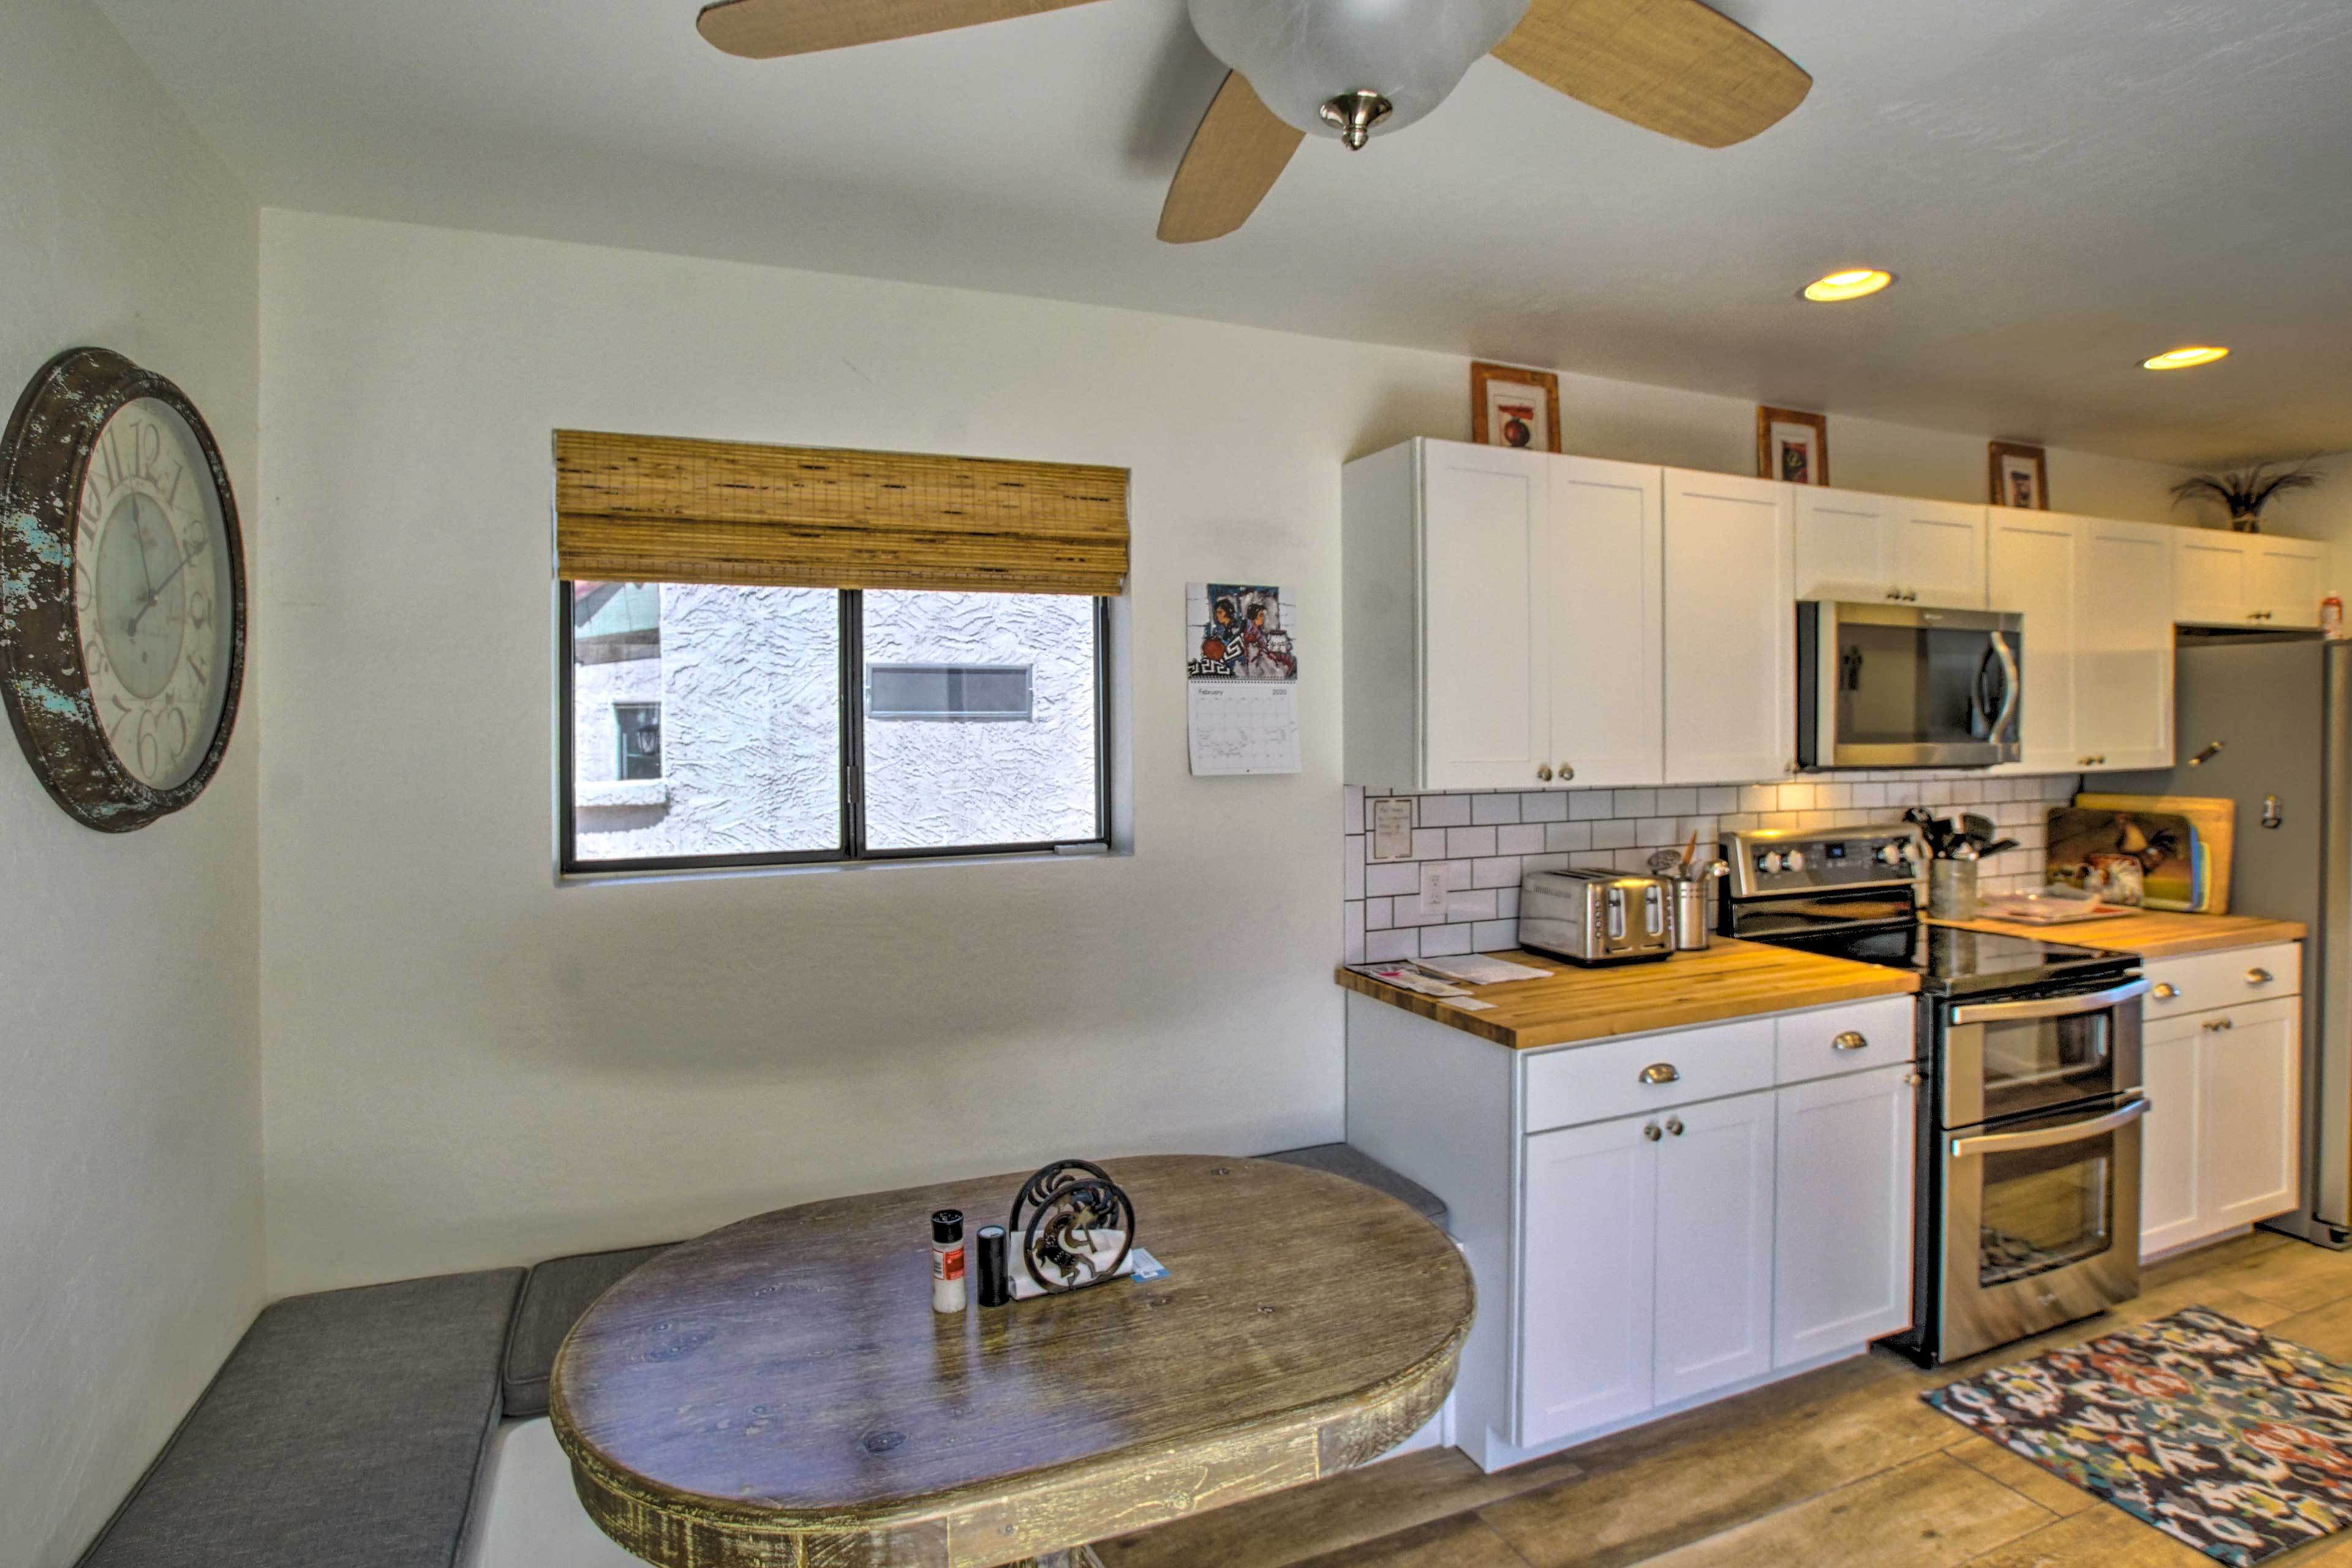 The kitchen is fully equipped and furnished with sleek contemporary style.